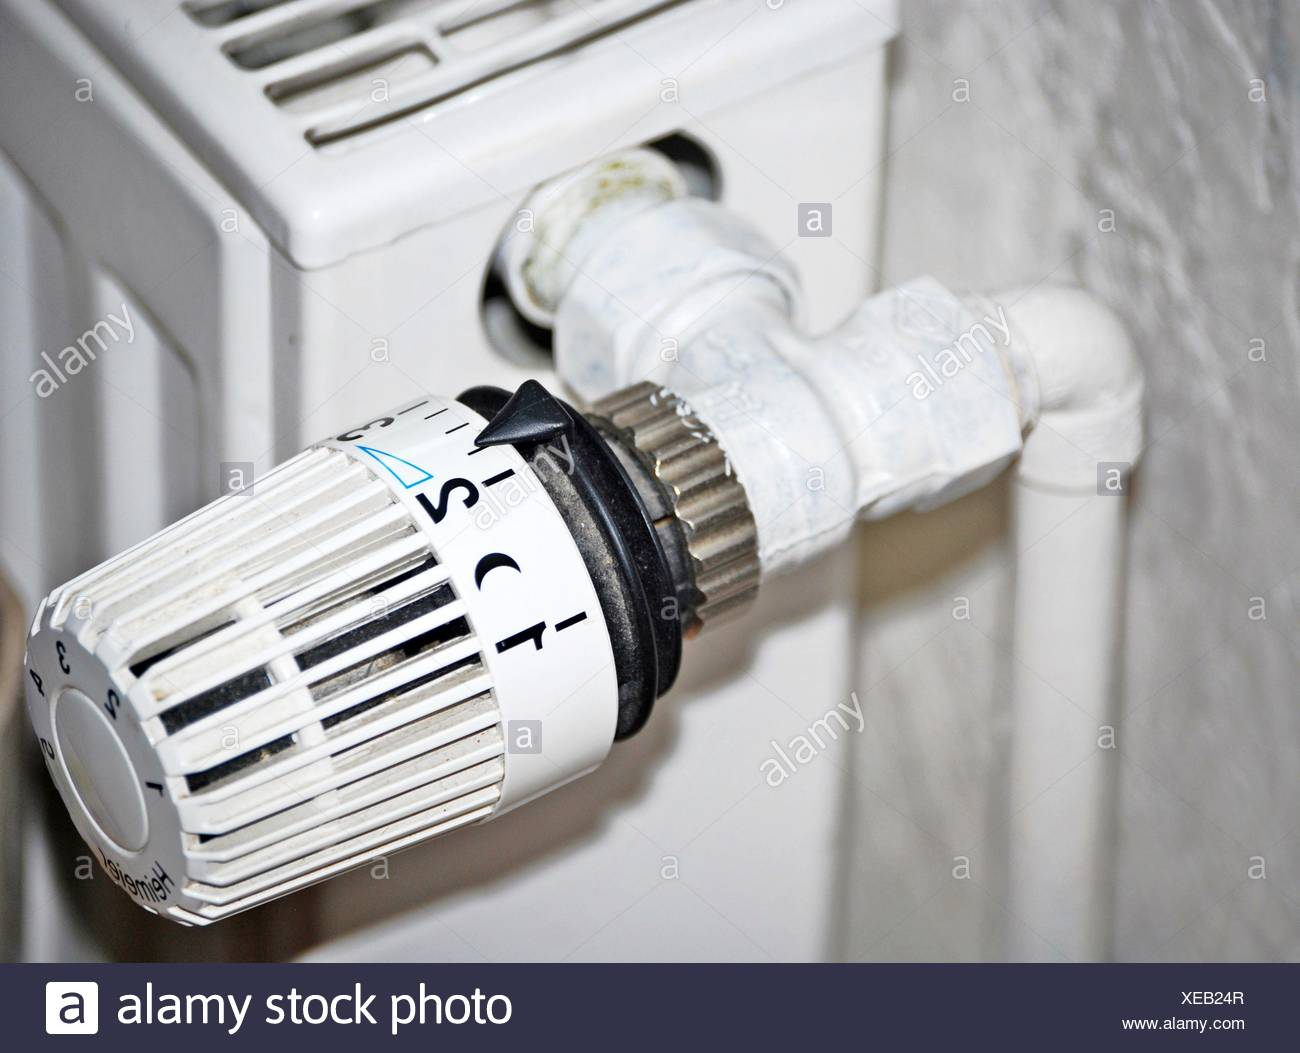 heating thermostate - Stock Image